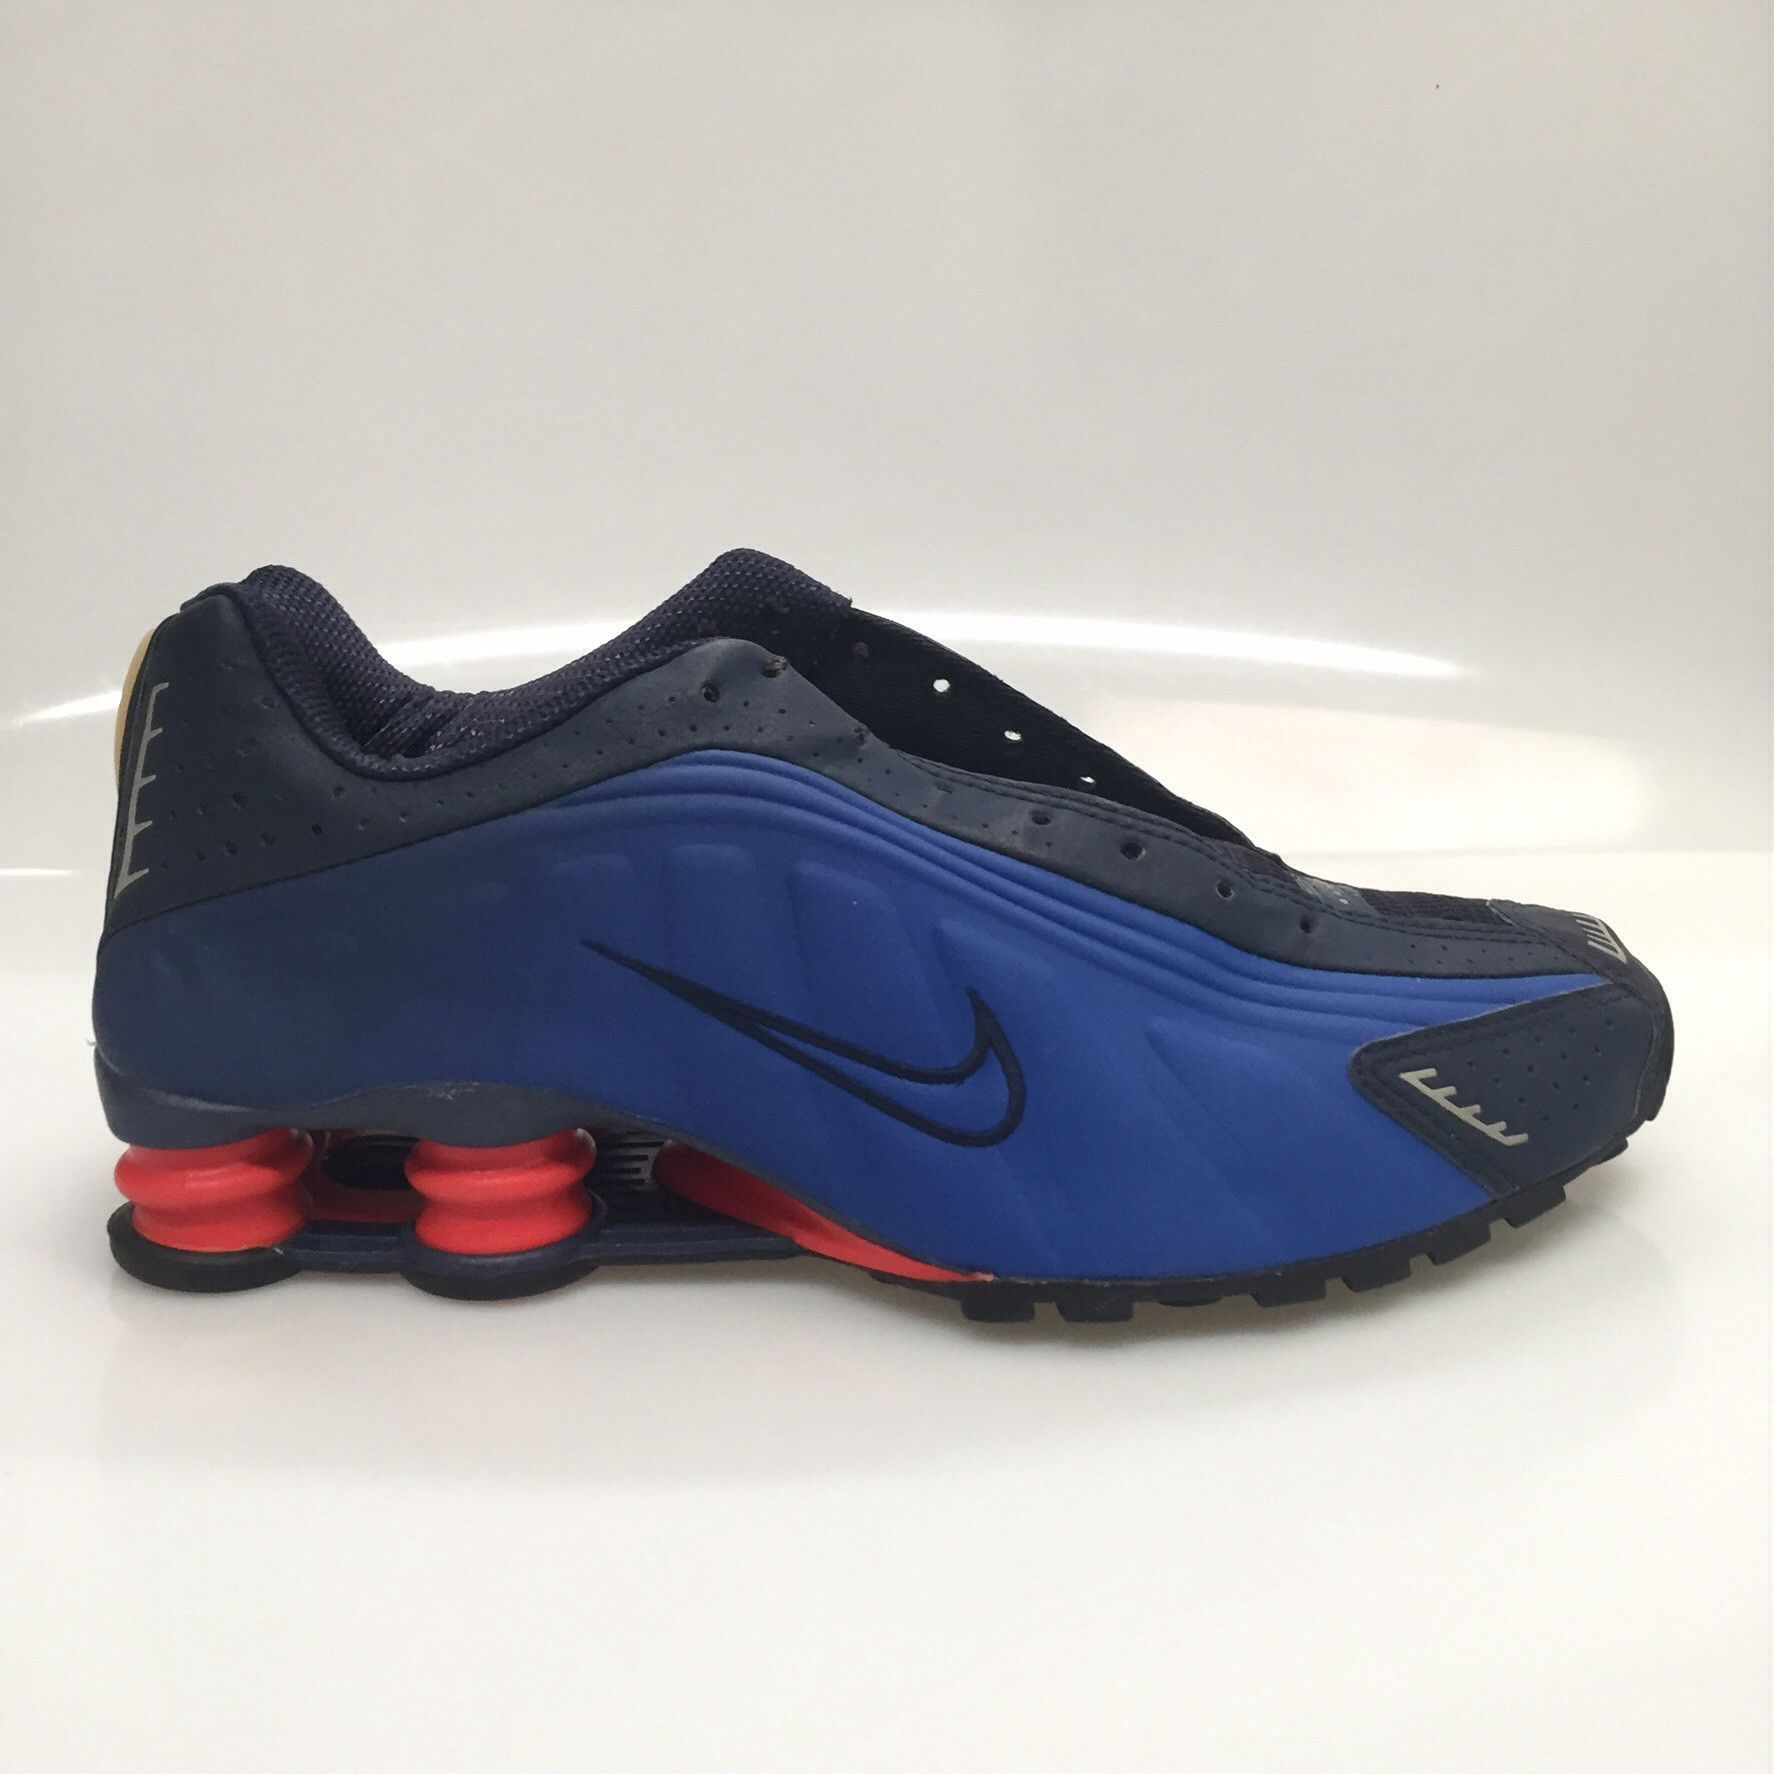 online retailer df601 3ed39 CONDITION  Brand New STYLE NUMBER  104265-441 YEAR  2001 COLORWAY  Royal